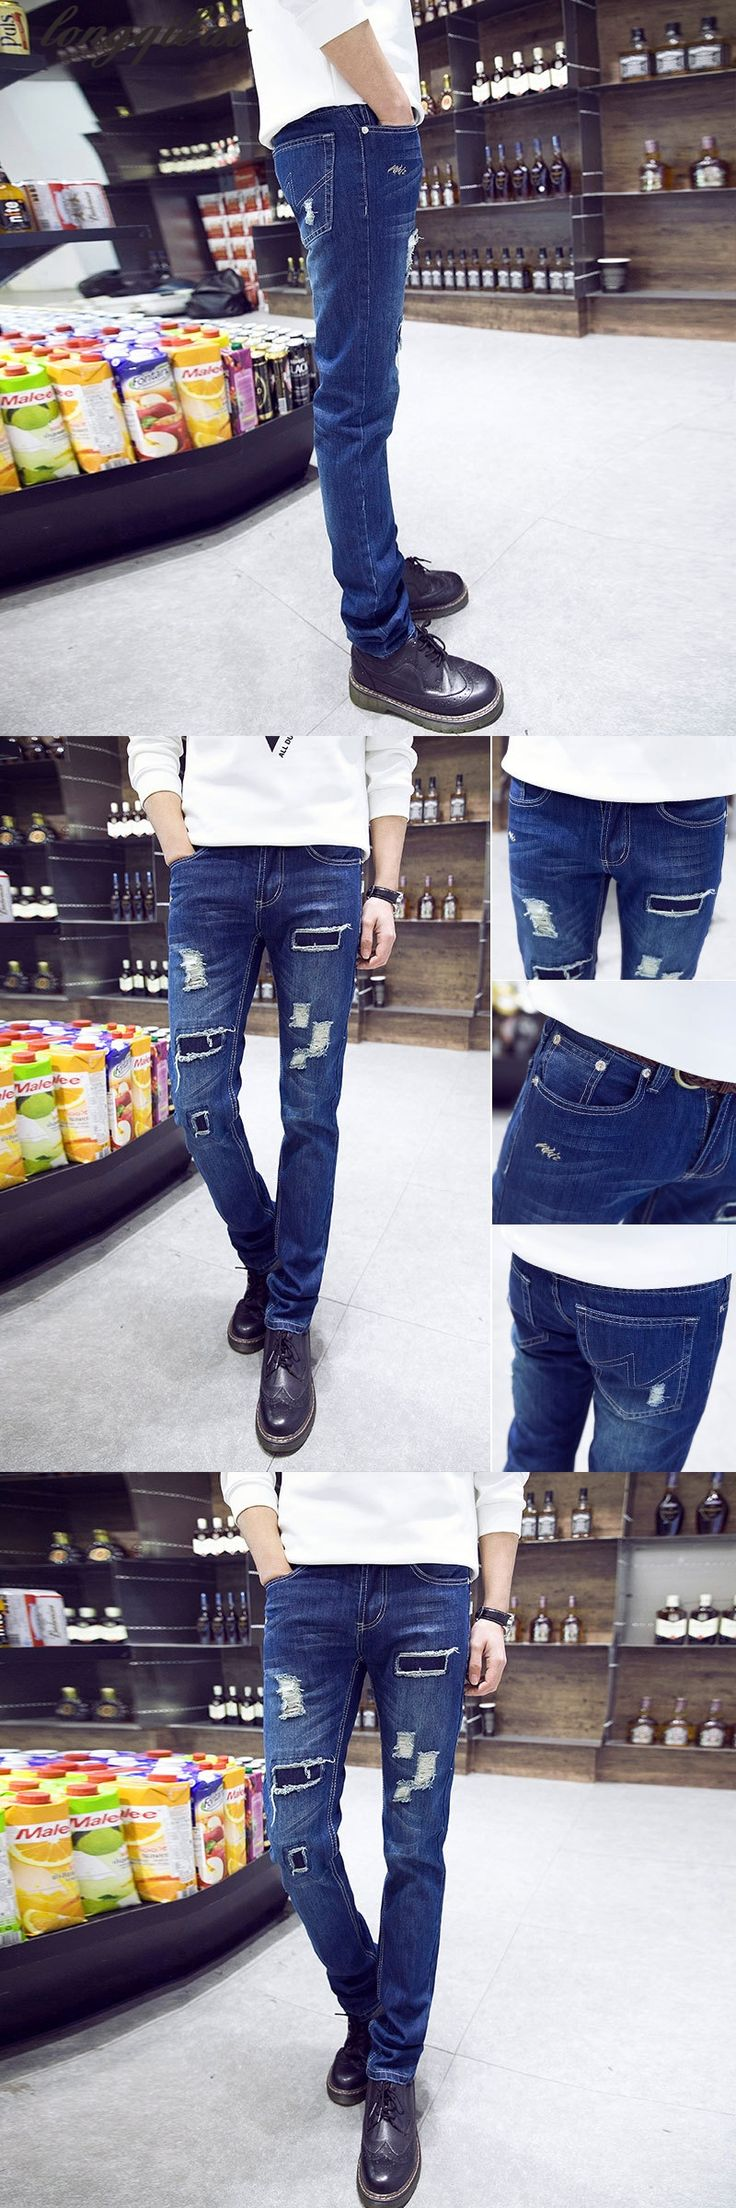 2017 New Fashion Mens Ripped Jeans Famous Brand Skinny Jeans Men High Quality Ripped Jeans For Men Oversized Male Jeans Pants